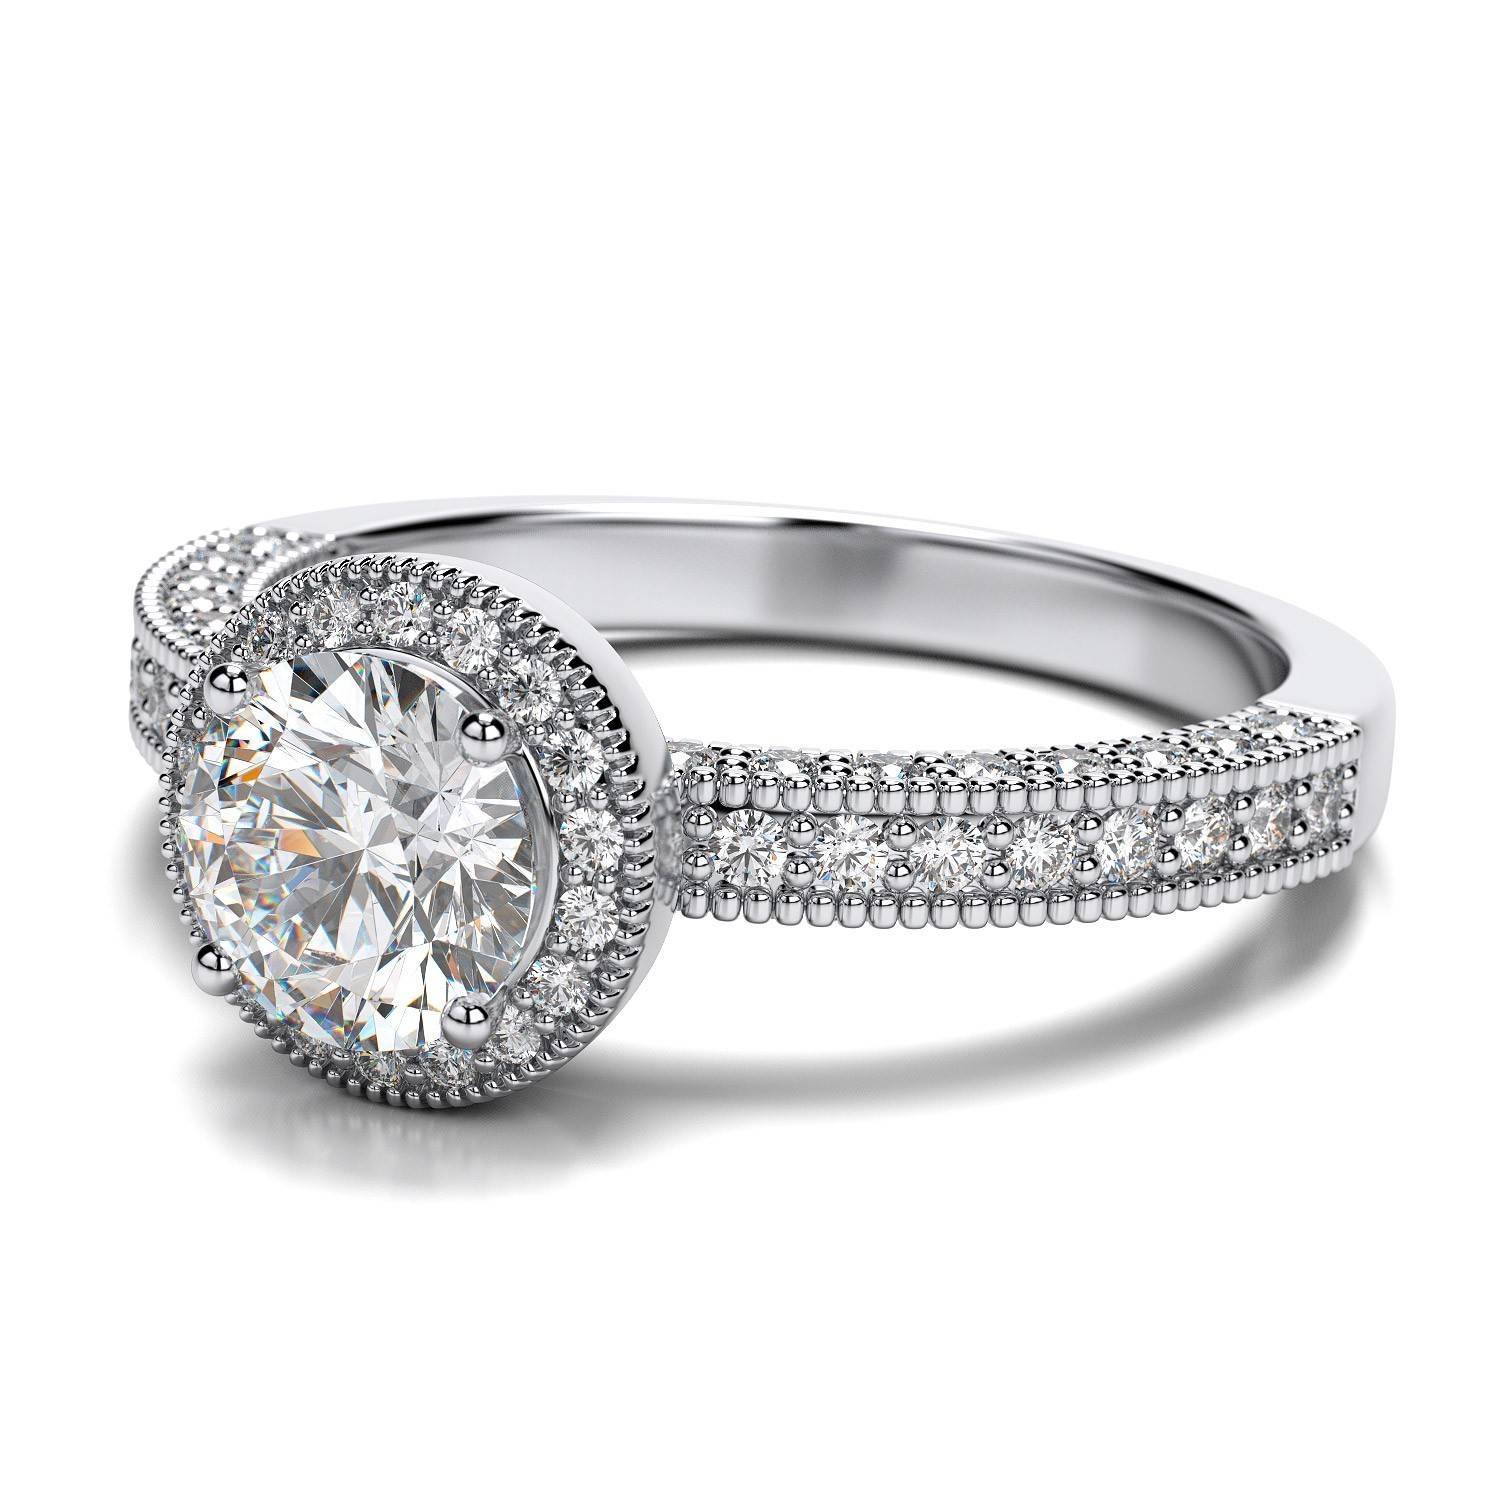 Round Antique Engagement Rings | Wedding, Promise, Diamond Throughout Round Antique Engagement Rings (View 10 of 15)